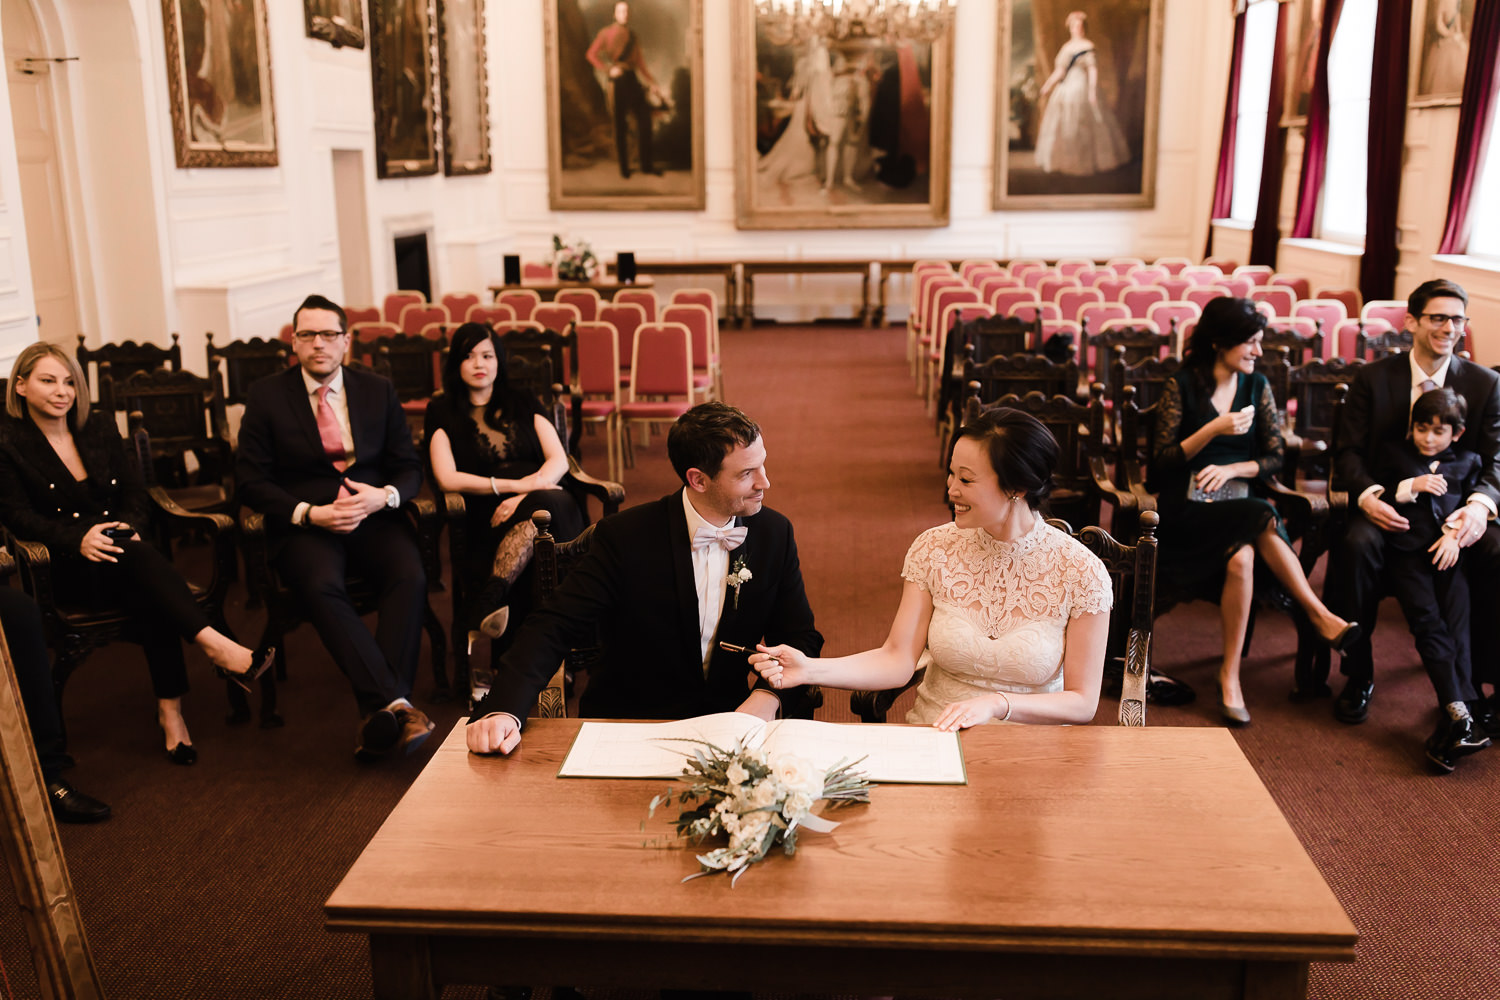 Windsor_Guildhall_wedding_ceremony_Castle_Hotel_084.jpg